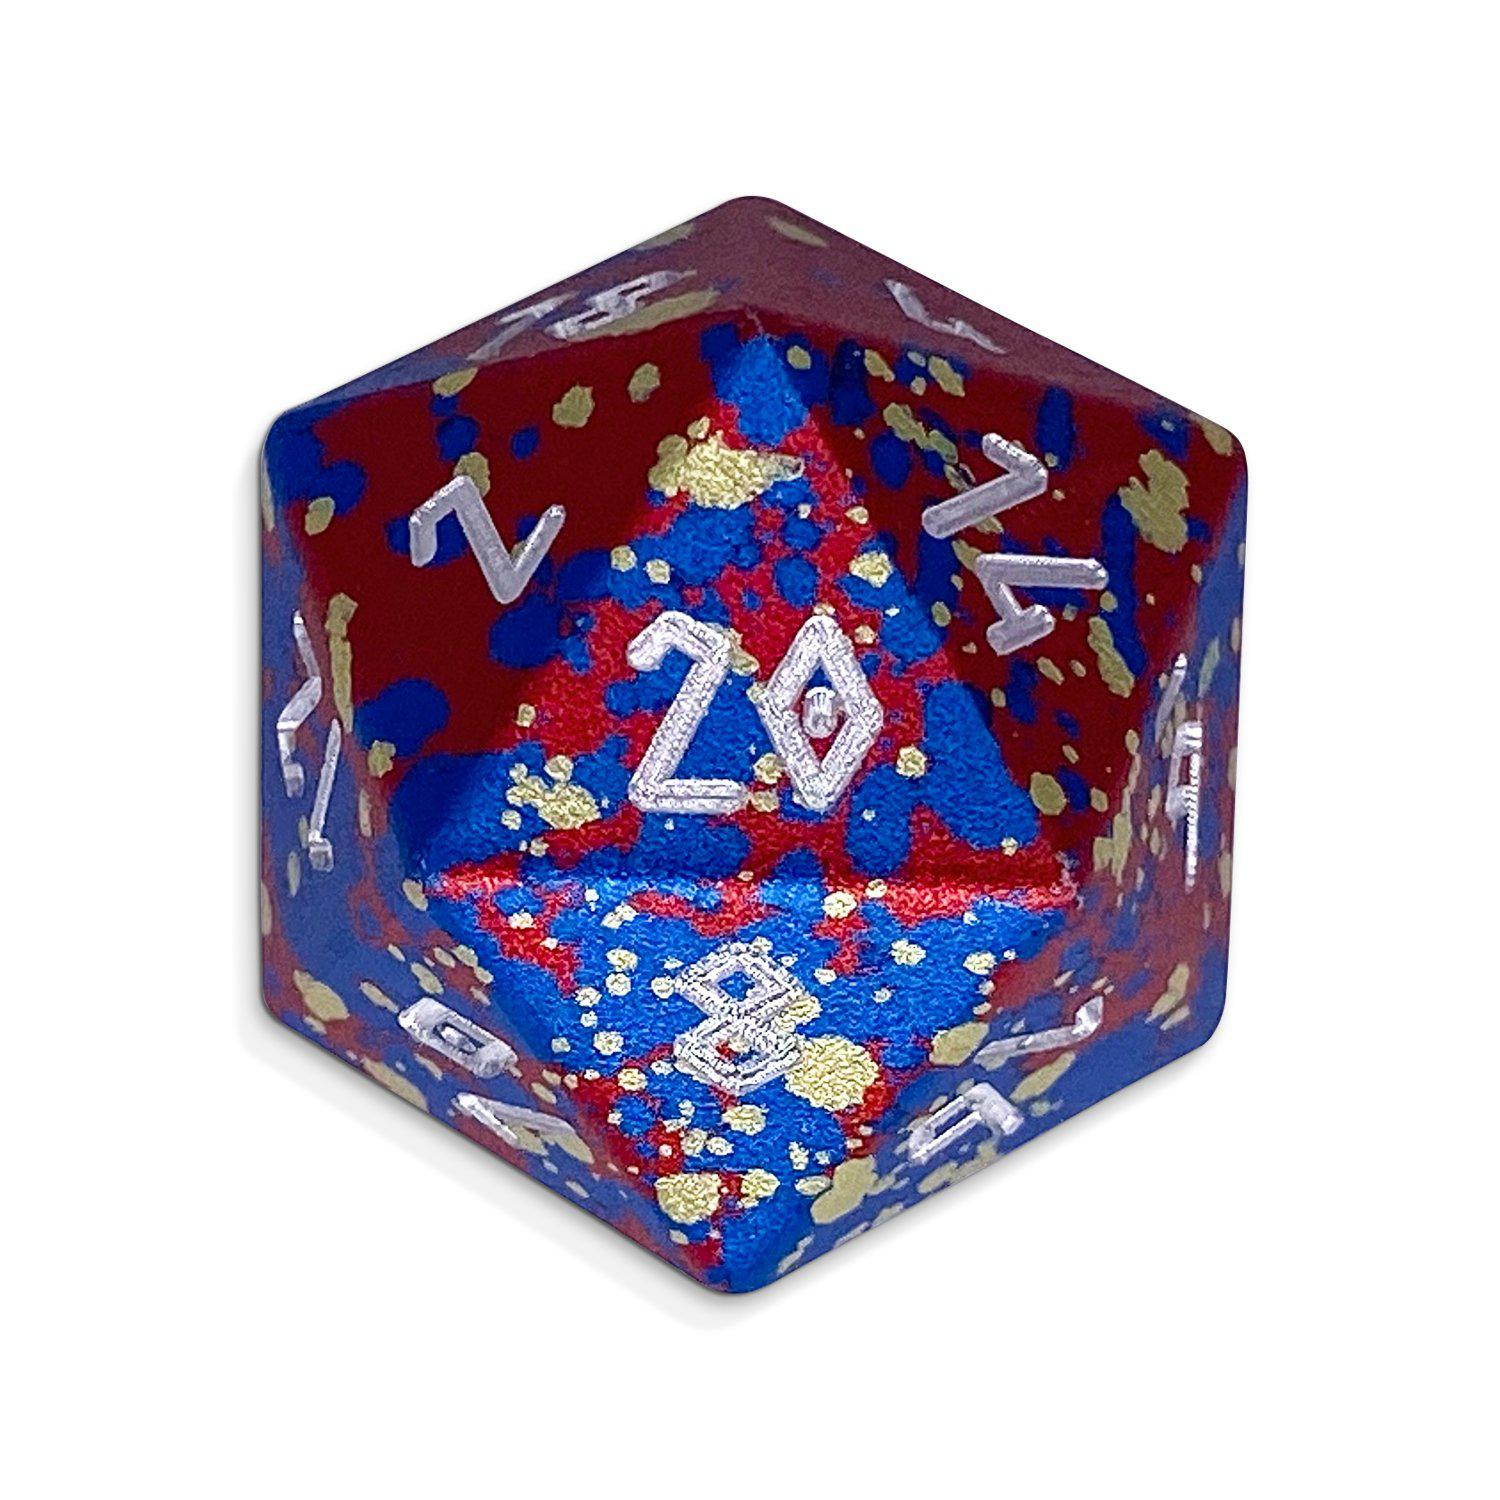 Single Wondrous Dice® D20 in Barbarians Rage by Norse Foundry